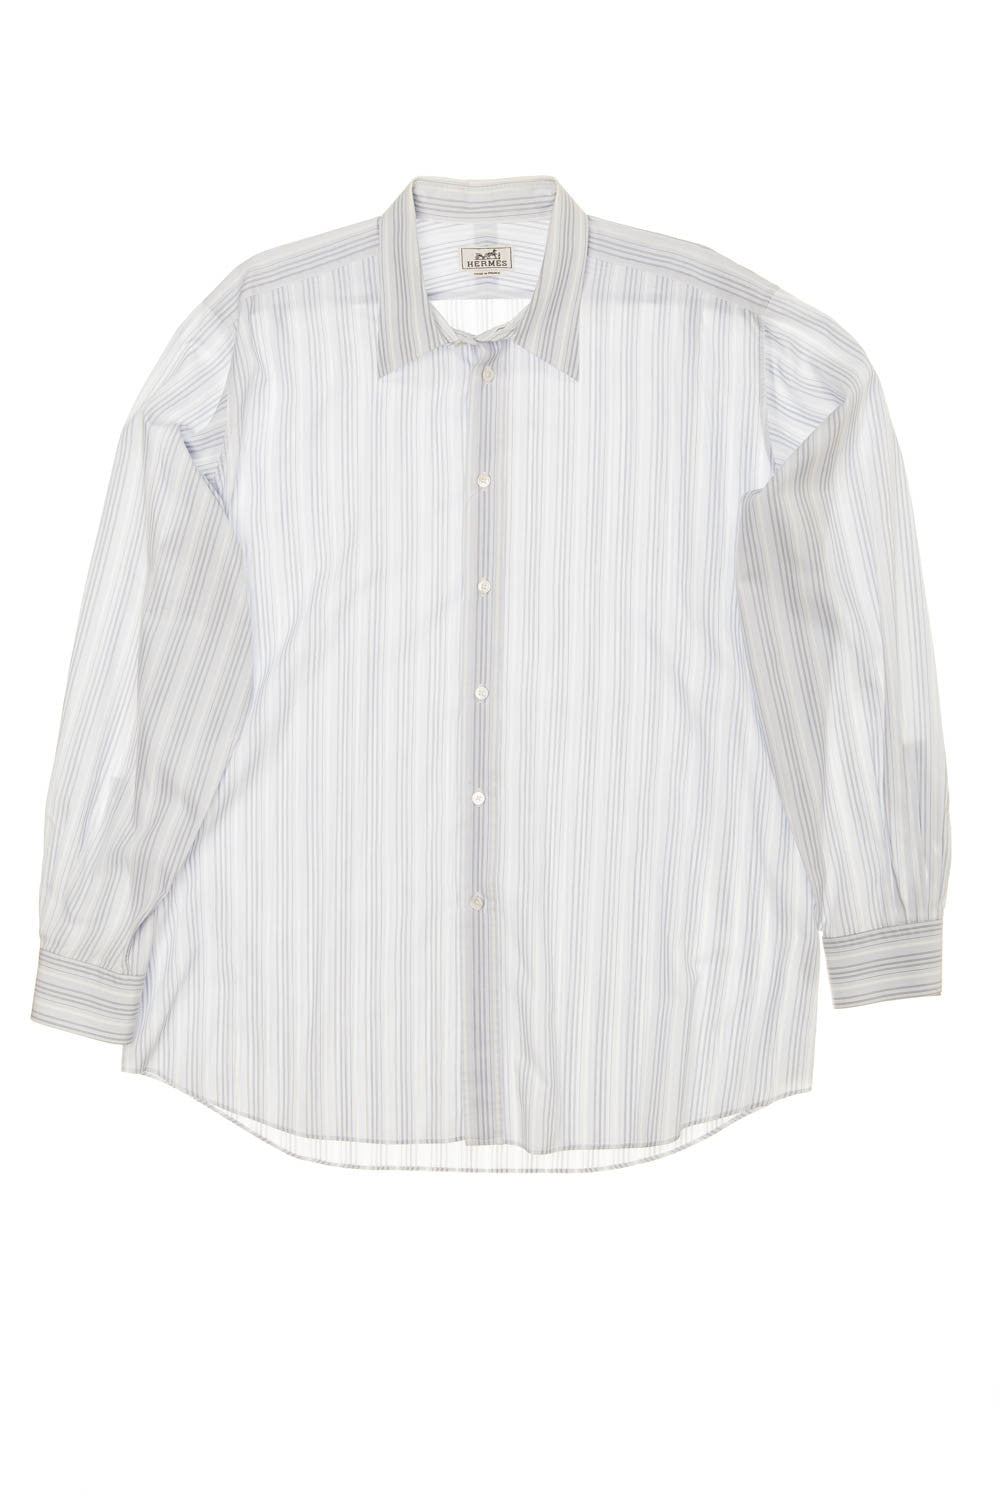 Hermes - Light Blue Dress Shirt with Stripes - IT 44